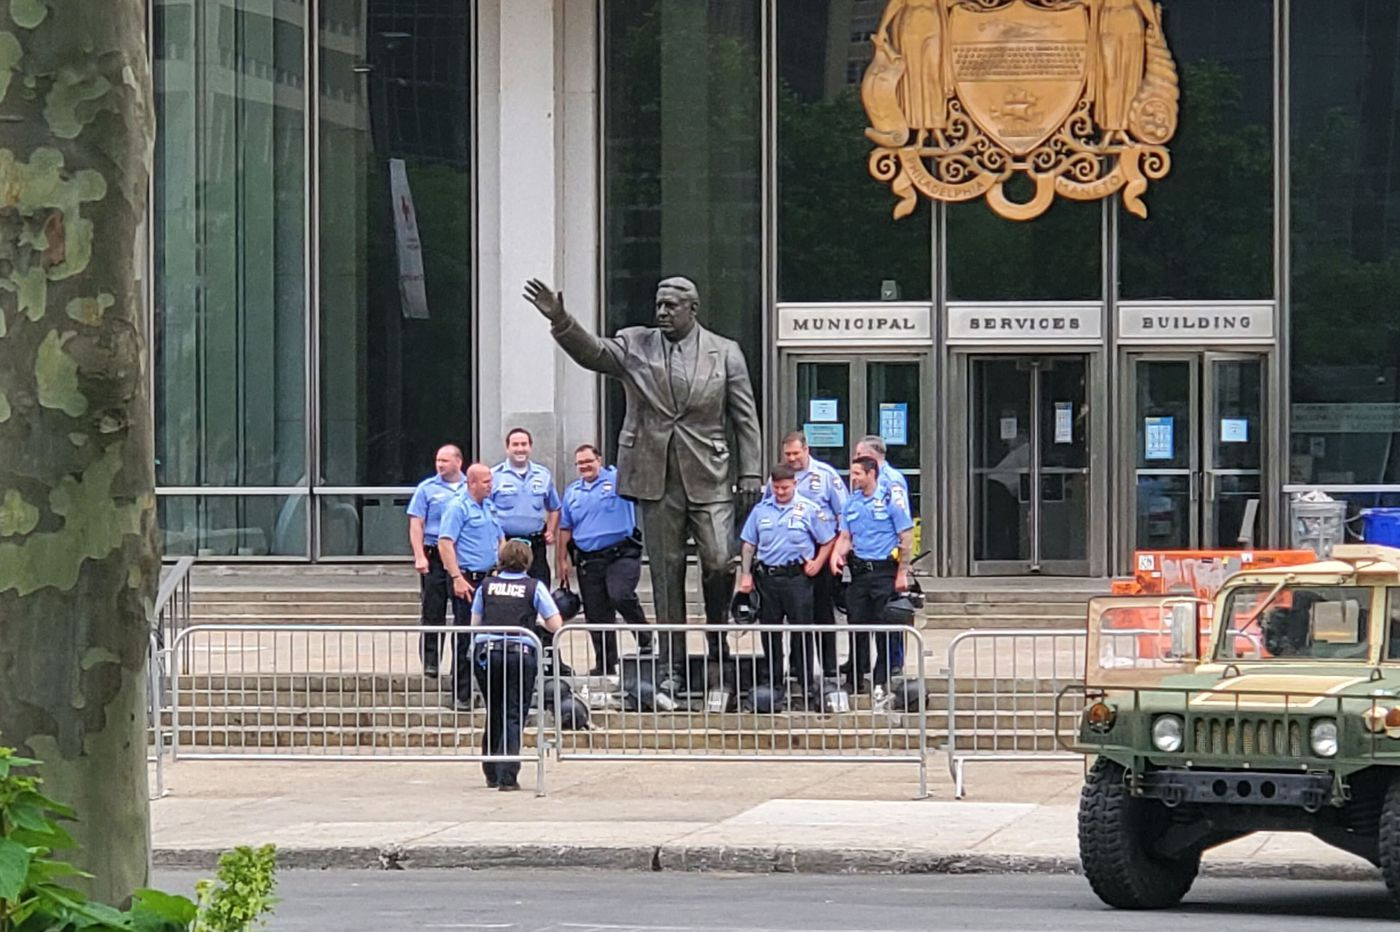 Philadelphia police officers appear to pose for picture at Rizzo statue days after protesters targeted it